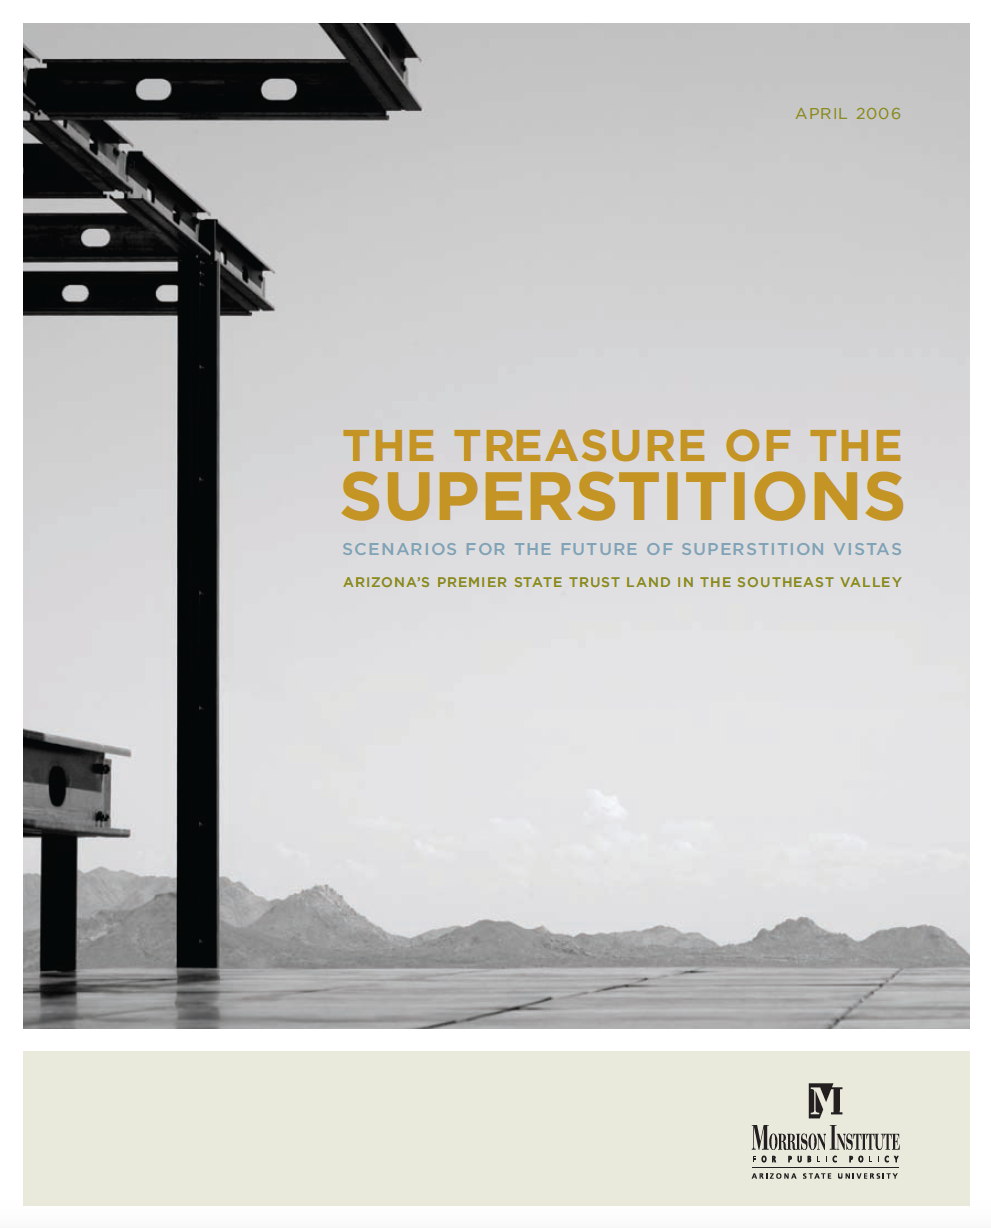 Thumbnail image of document cover: The Treasure of the Superstitions: Scenarios for the Future of Superstition Vistas